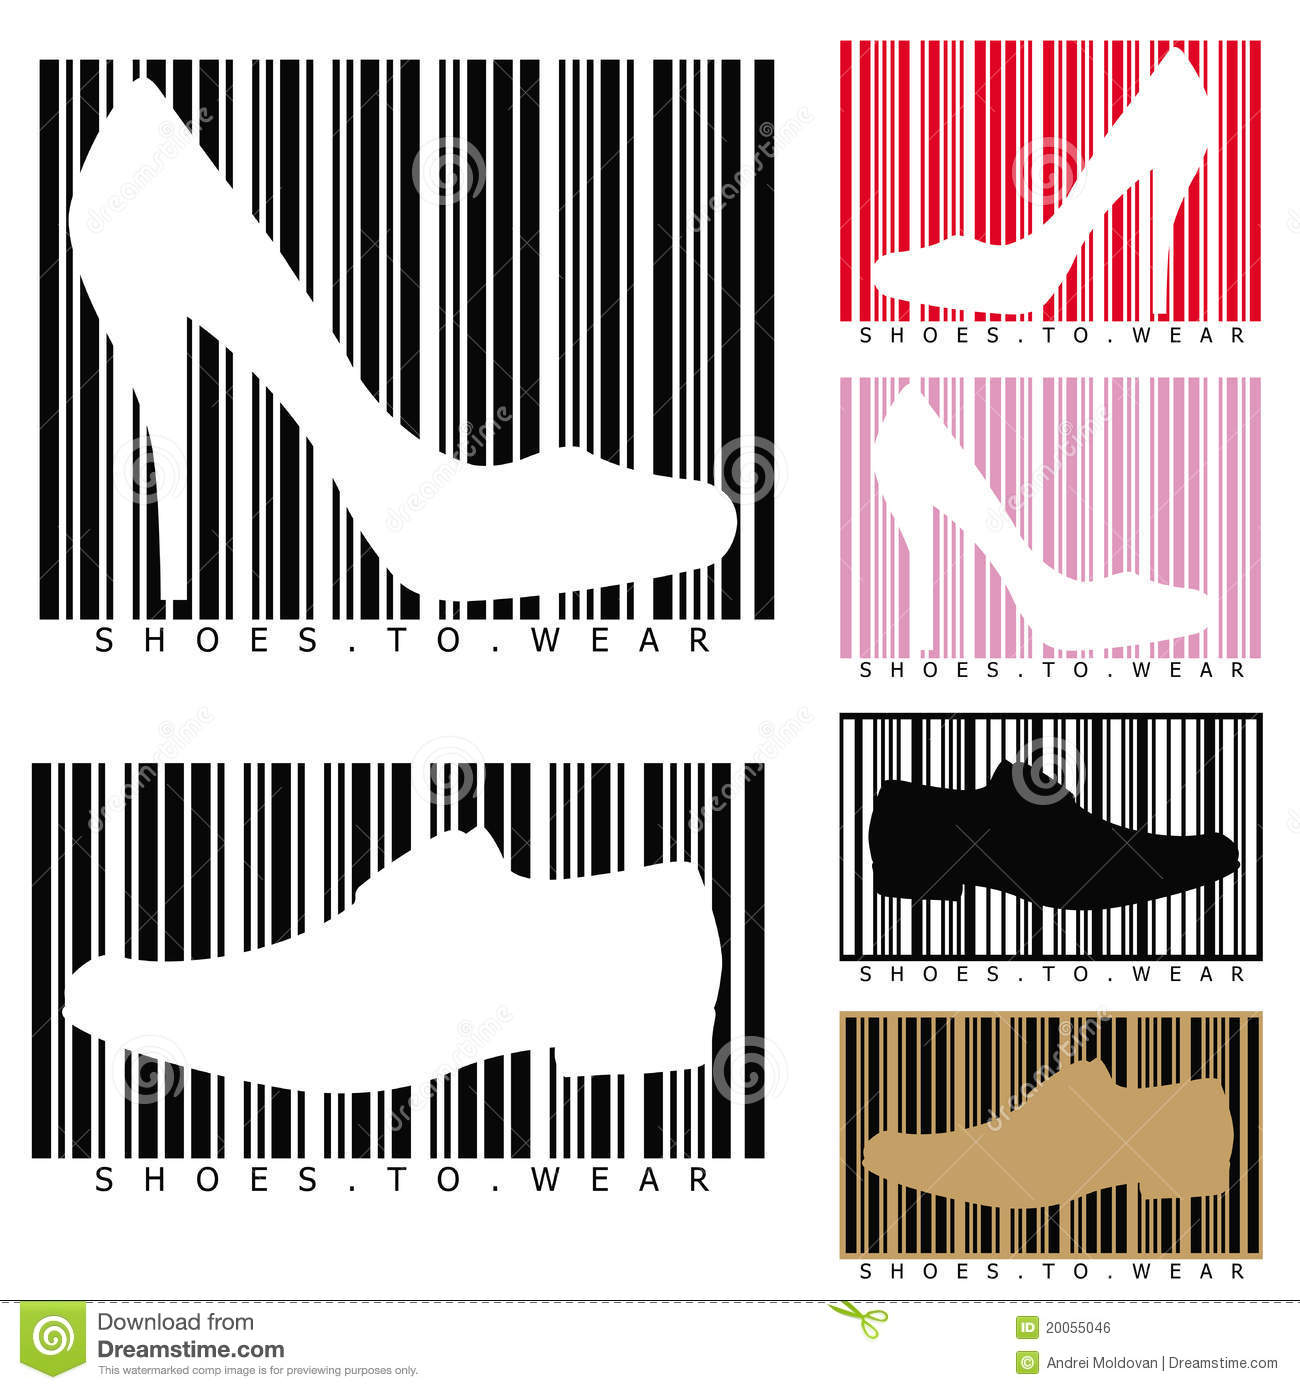 So is the barcode deactivated upon purchase, or does Macy's have the ability to scan where the purchaser goes with the shoes?